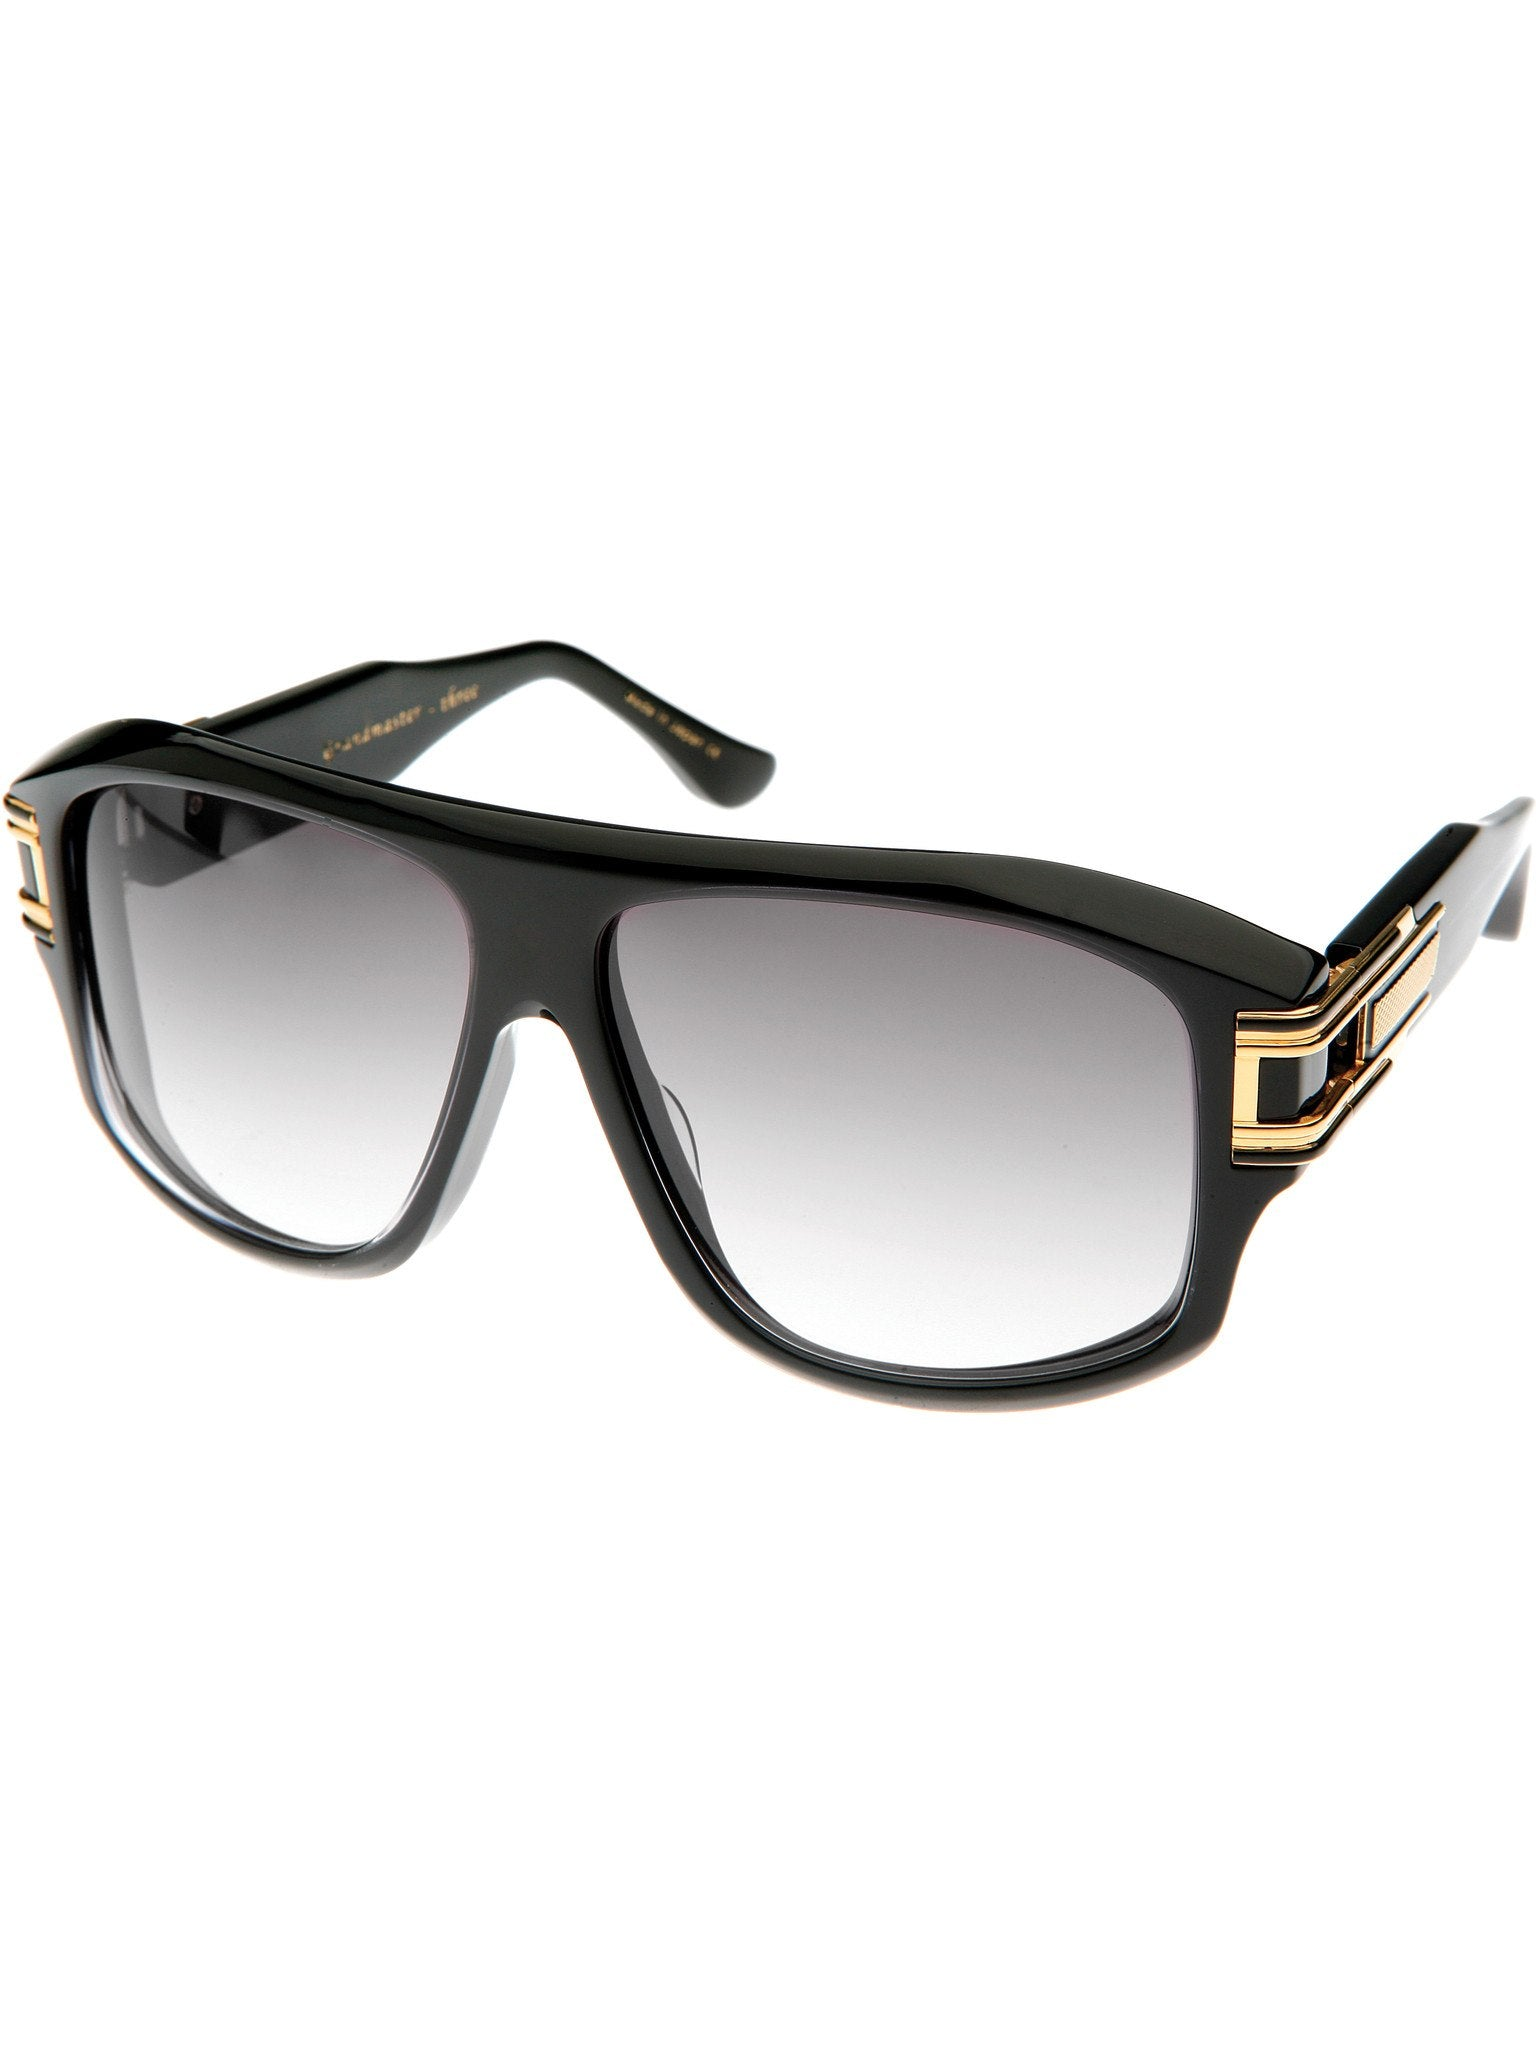 f6907385f4 Sunglasses - Dita Grandmaster-Three DRX-2021A Sunglasses